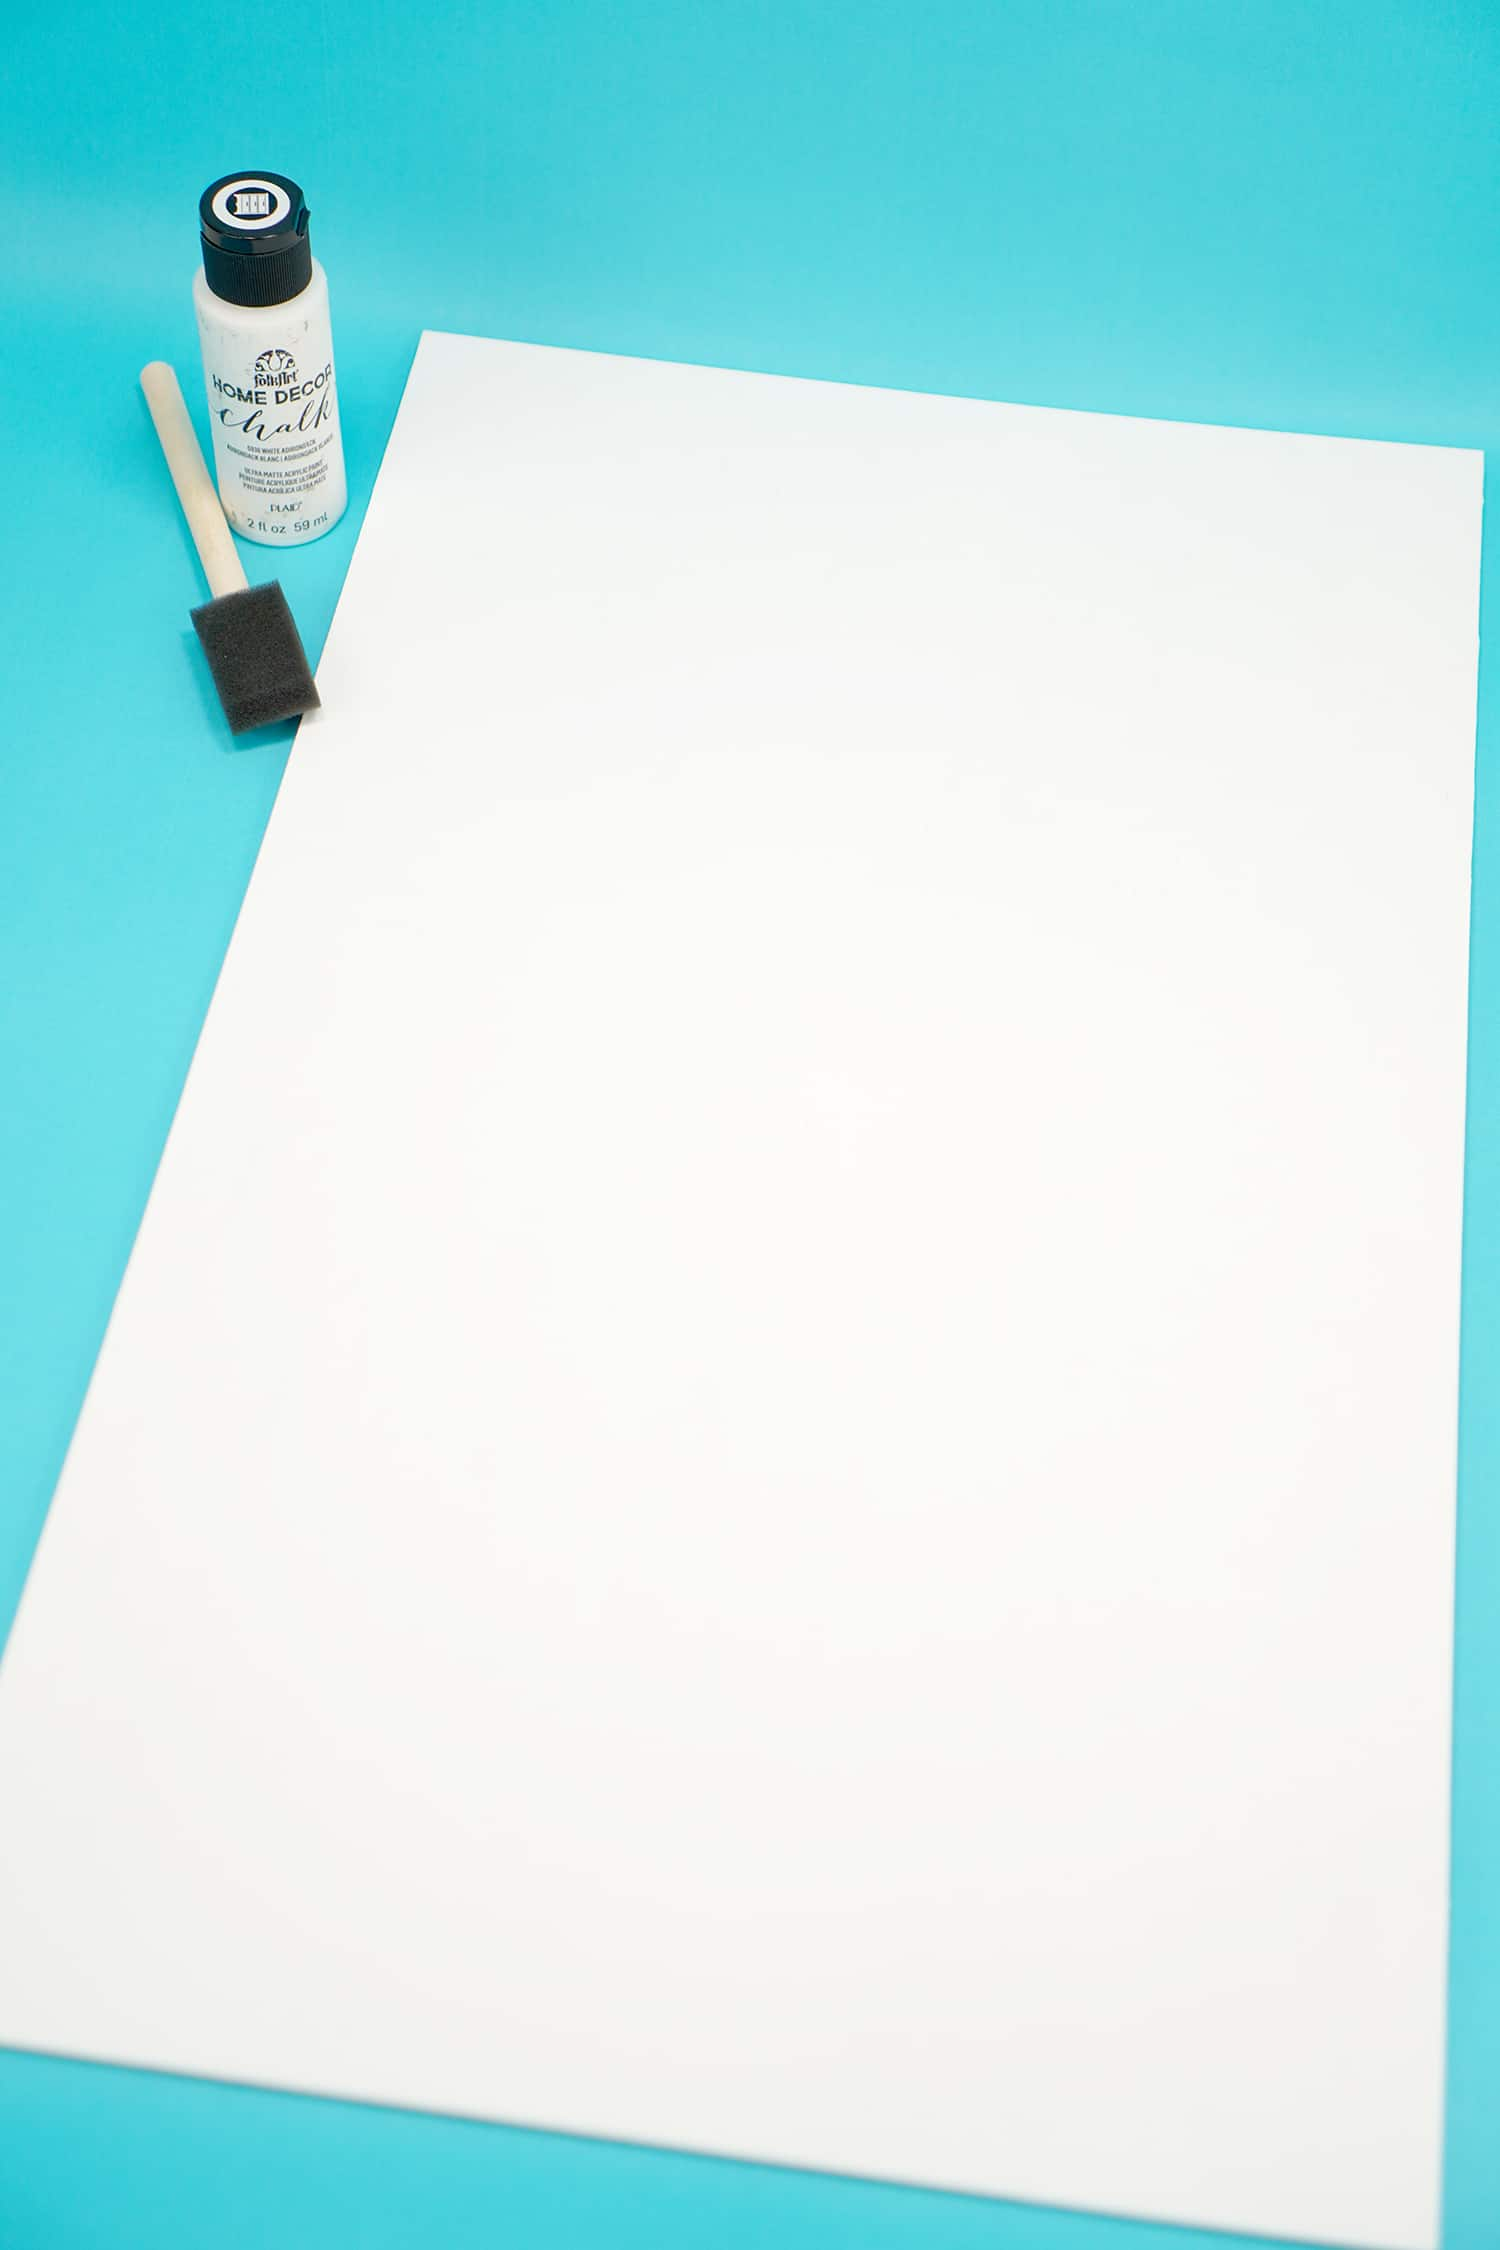 White painted board with white paint and paintbrush on aqua blue background